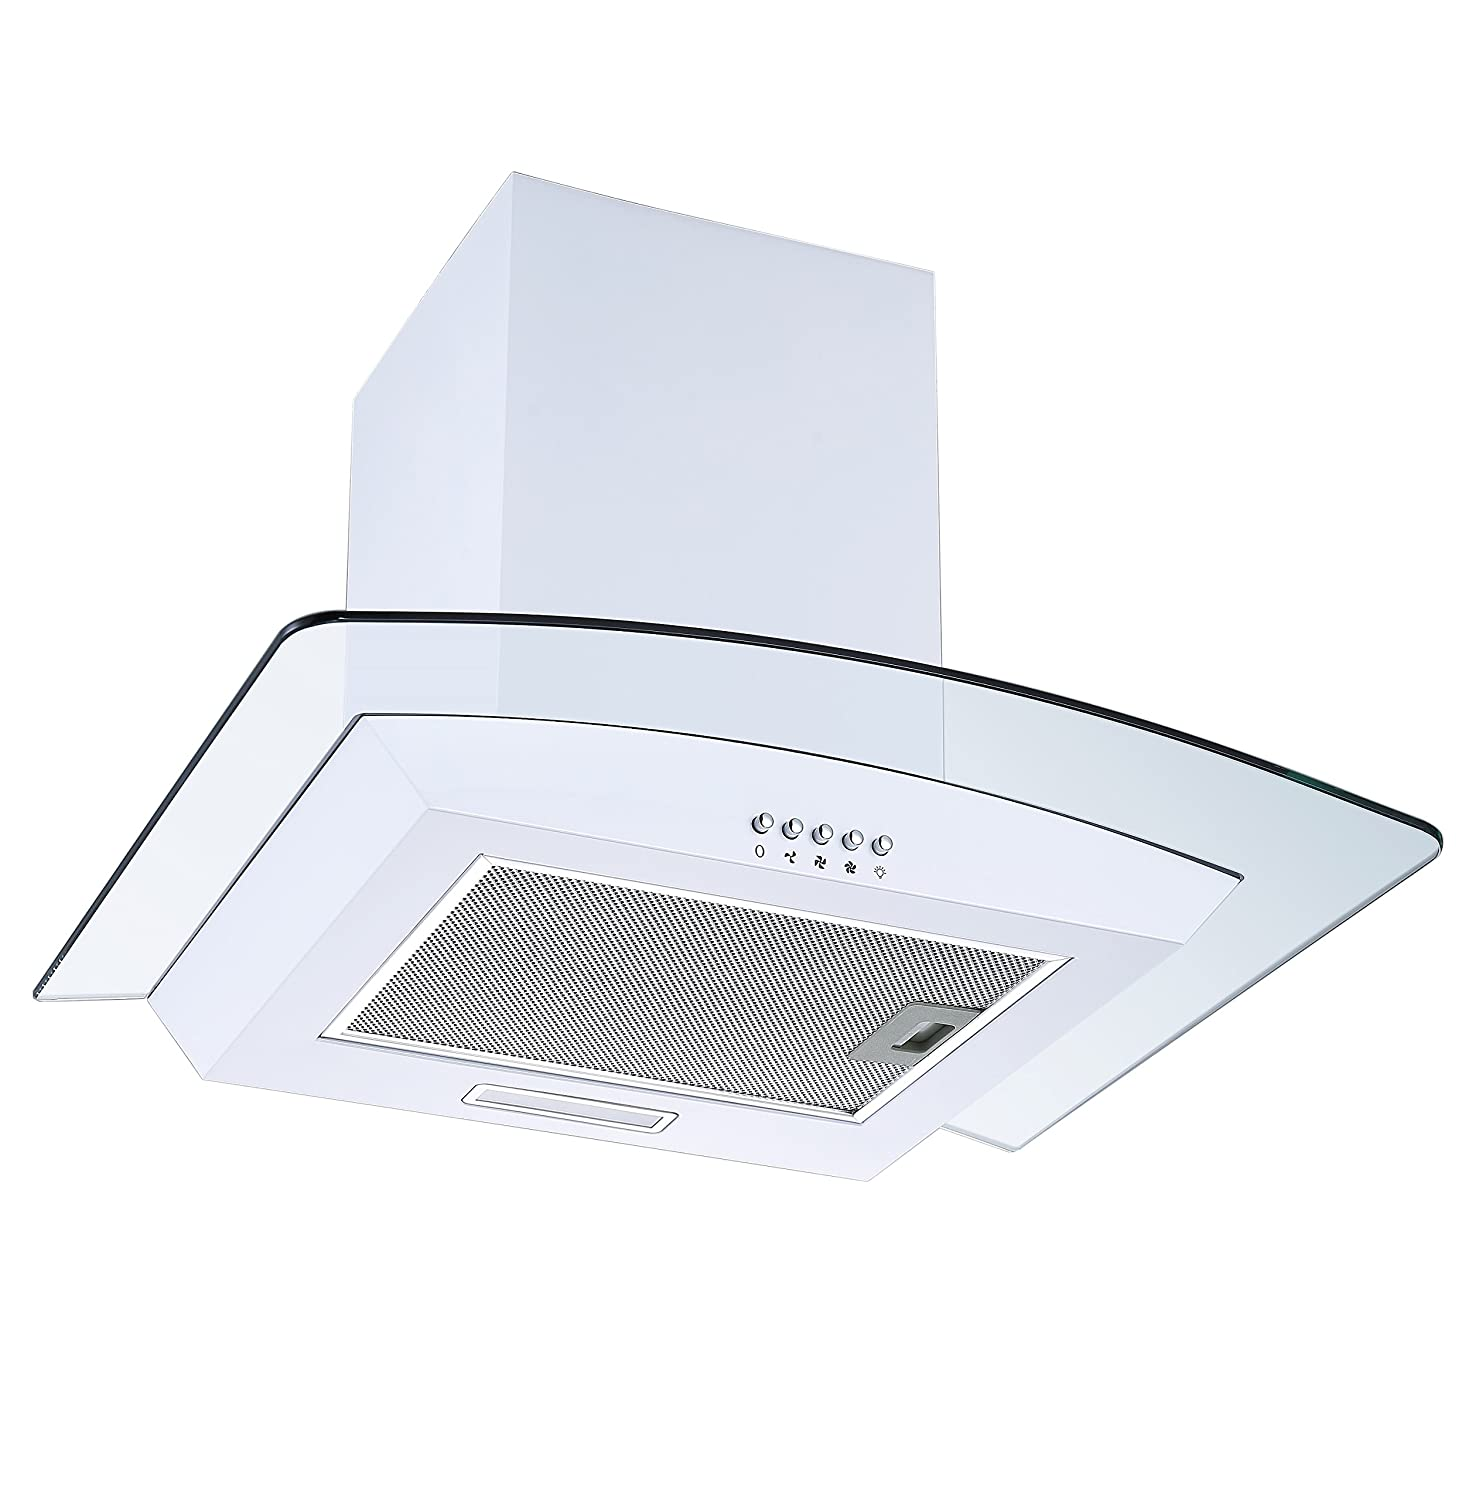 White 60cm Curved Glass Chimney Cooker Hood | Cookology CGL600WH Unbranded Extractor Fan in White